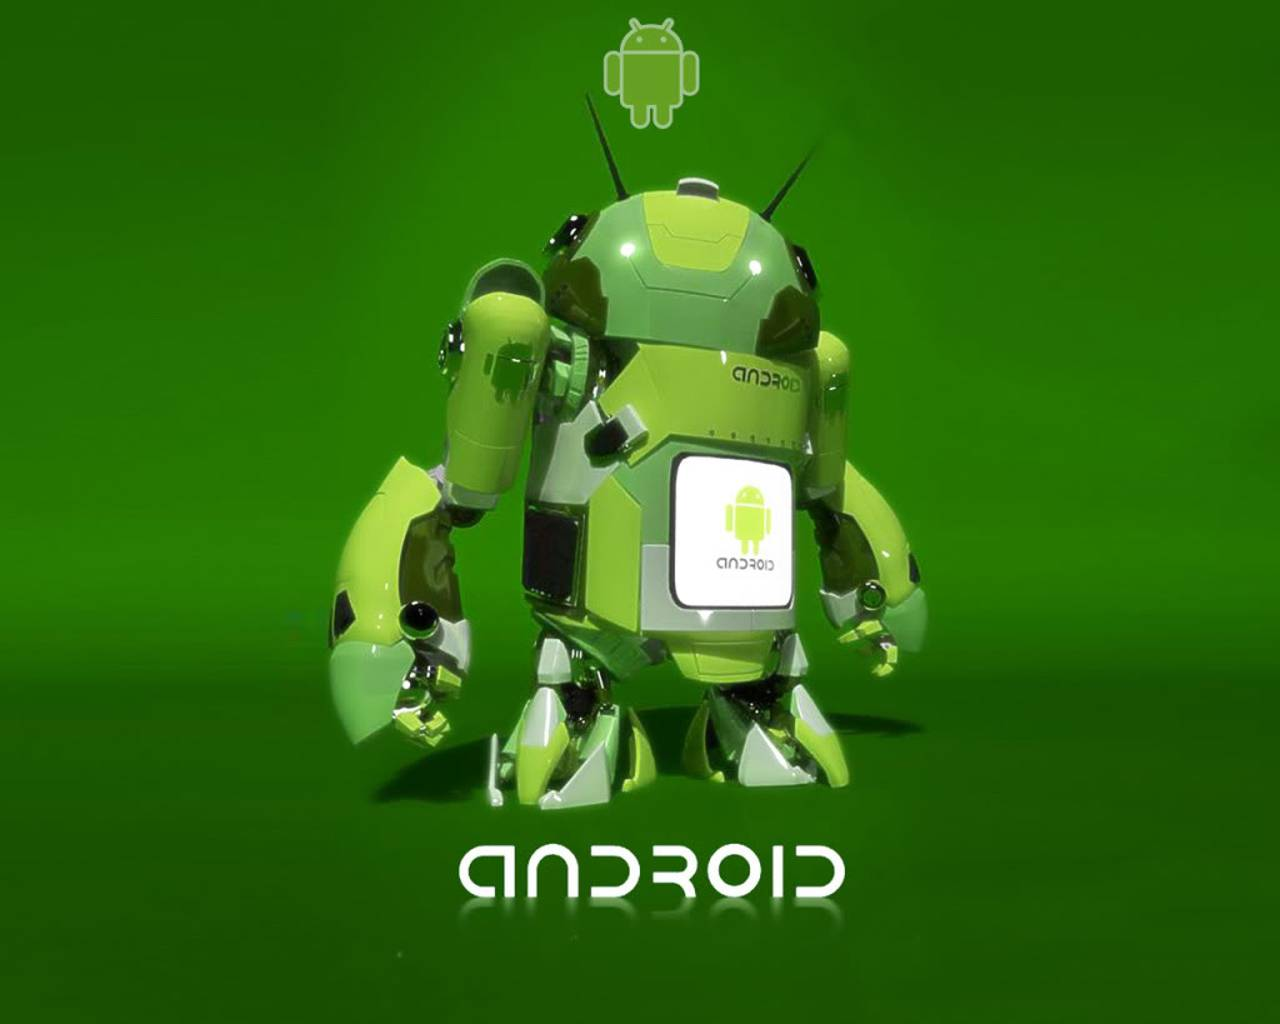 3d android super robot wallpaper – HD 2013 HQ Desktop Wallpaper